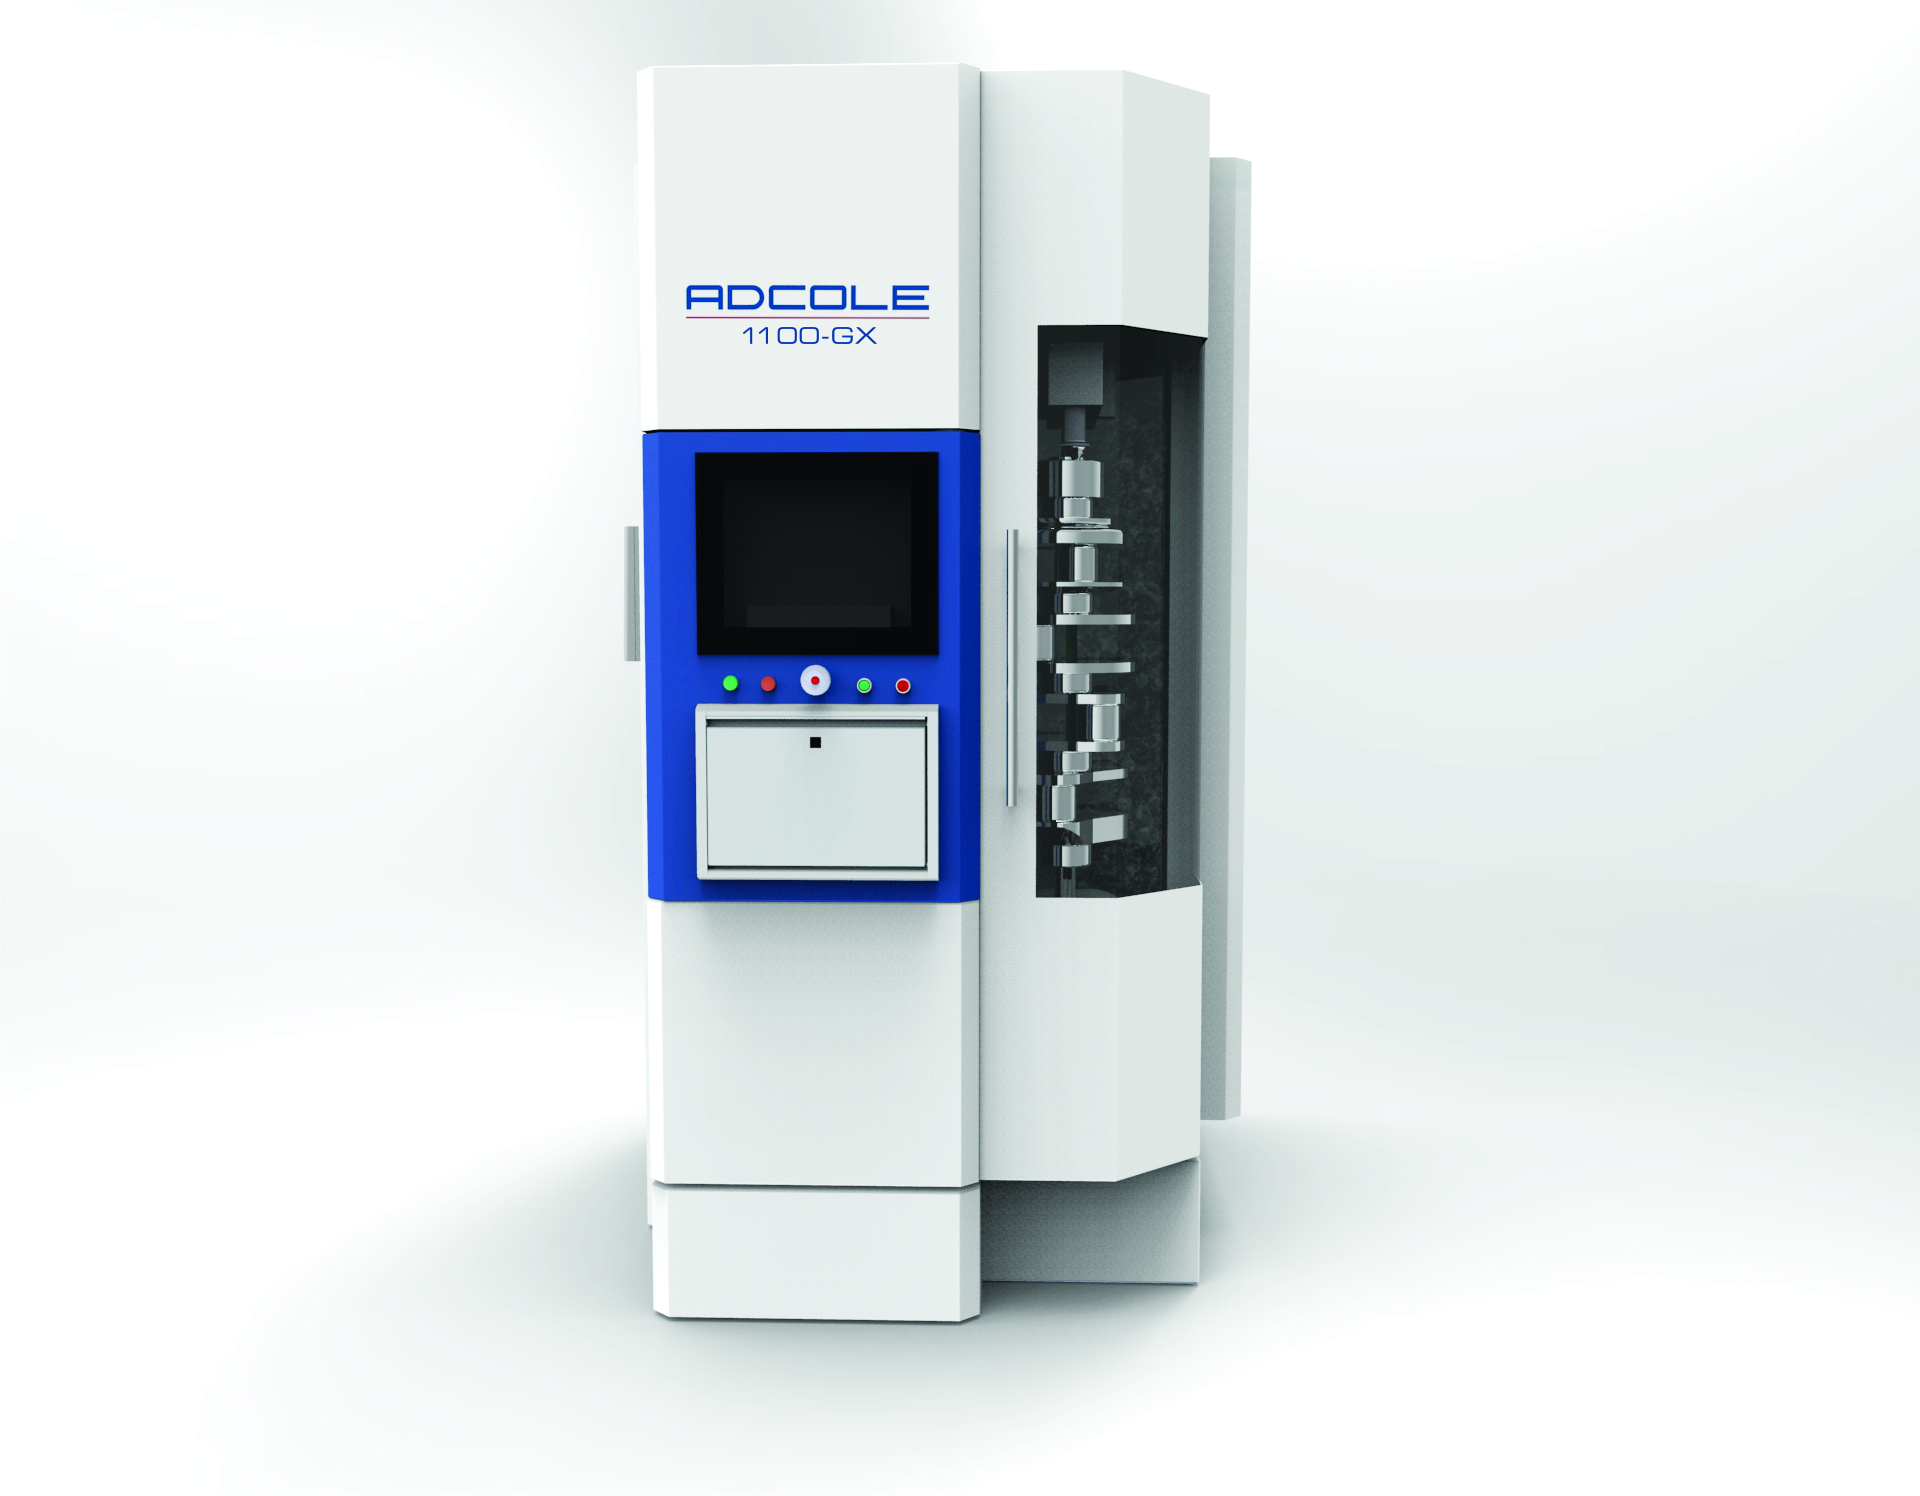 The adaptable Adcole Model 1100_GX gage is engineered to operate in a wide variety of work environments.